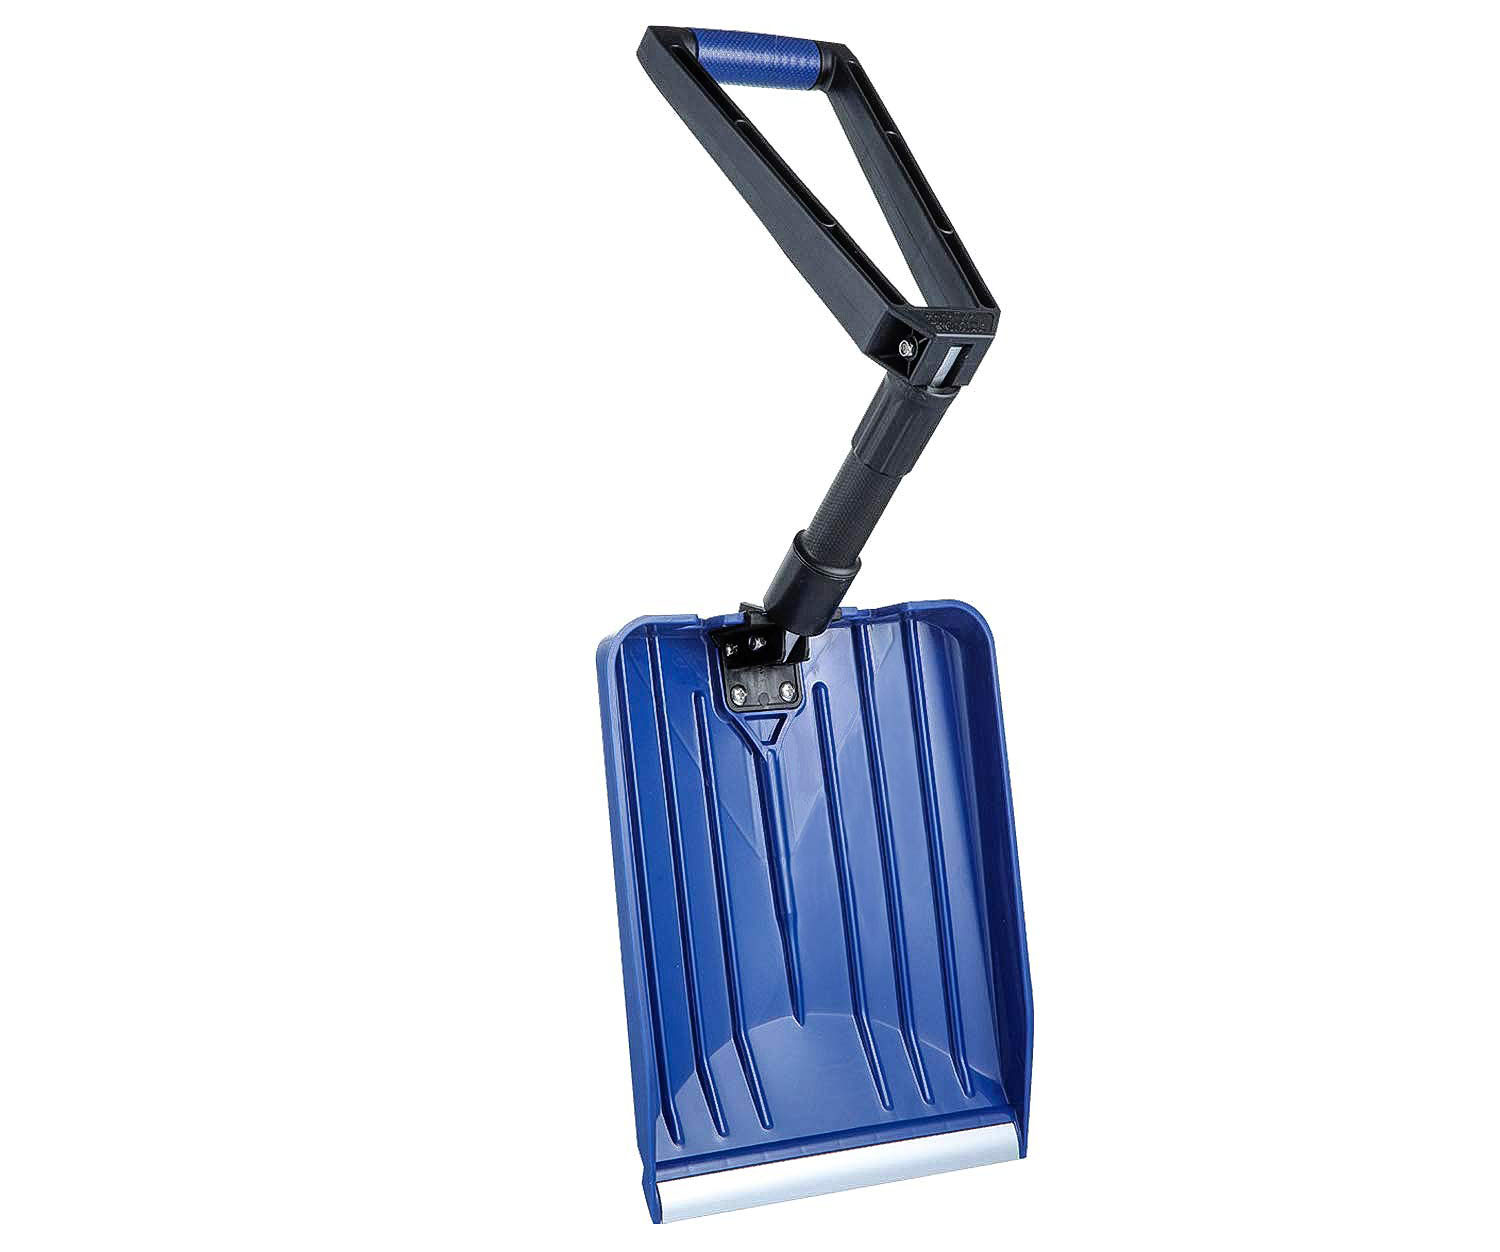 ORIENTOOLS Collapsible Snow Shovel with D-Grip Handle and Durable Aluminum Edge Blade, Portable Snow Shovel for Your Car, Truck, Recreational Vehicle, etc. (Blade 11in)